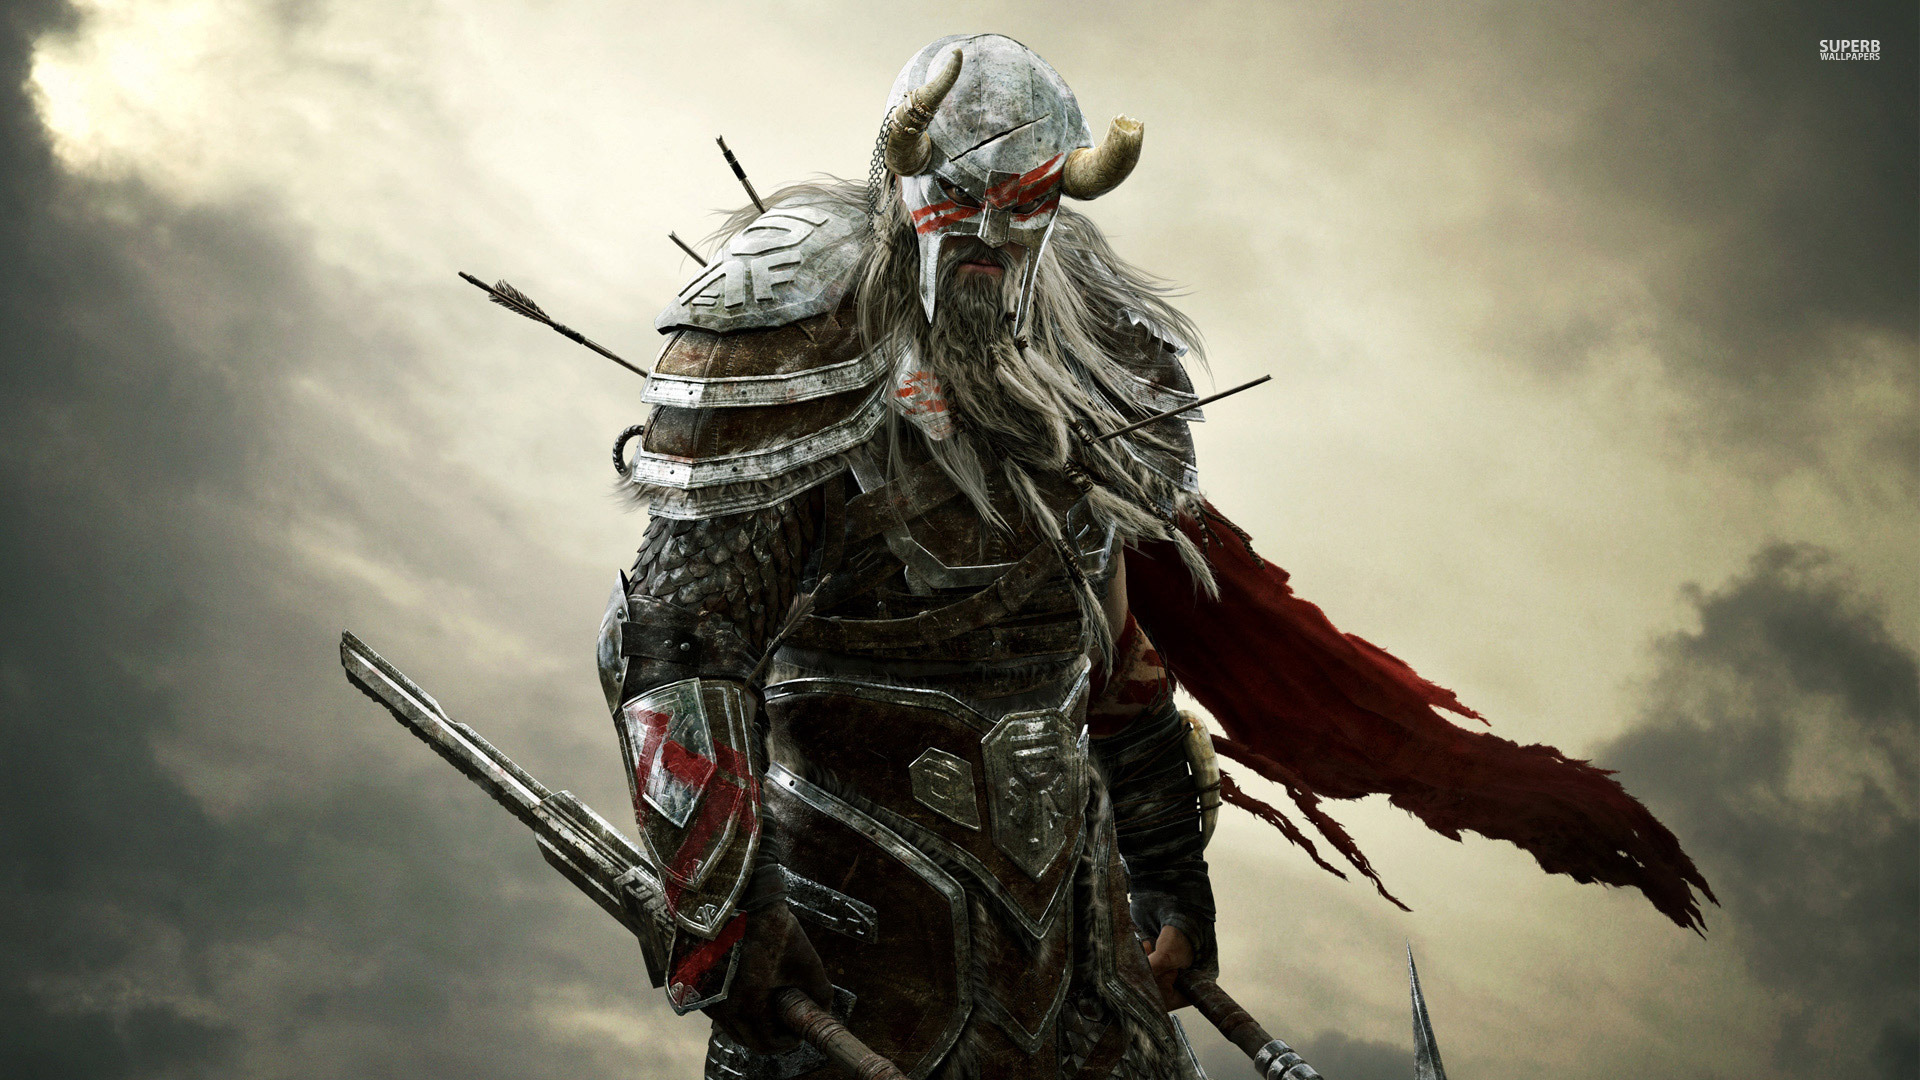 Barbarian - The Elder Scrolls Online wallpaper 1920x1080 jpg